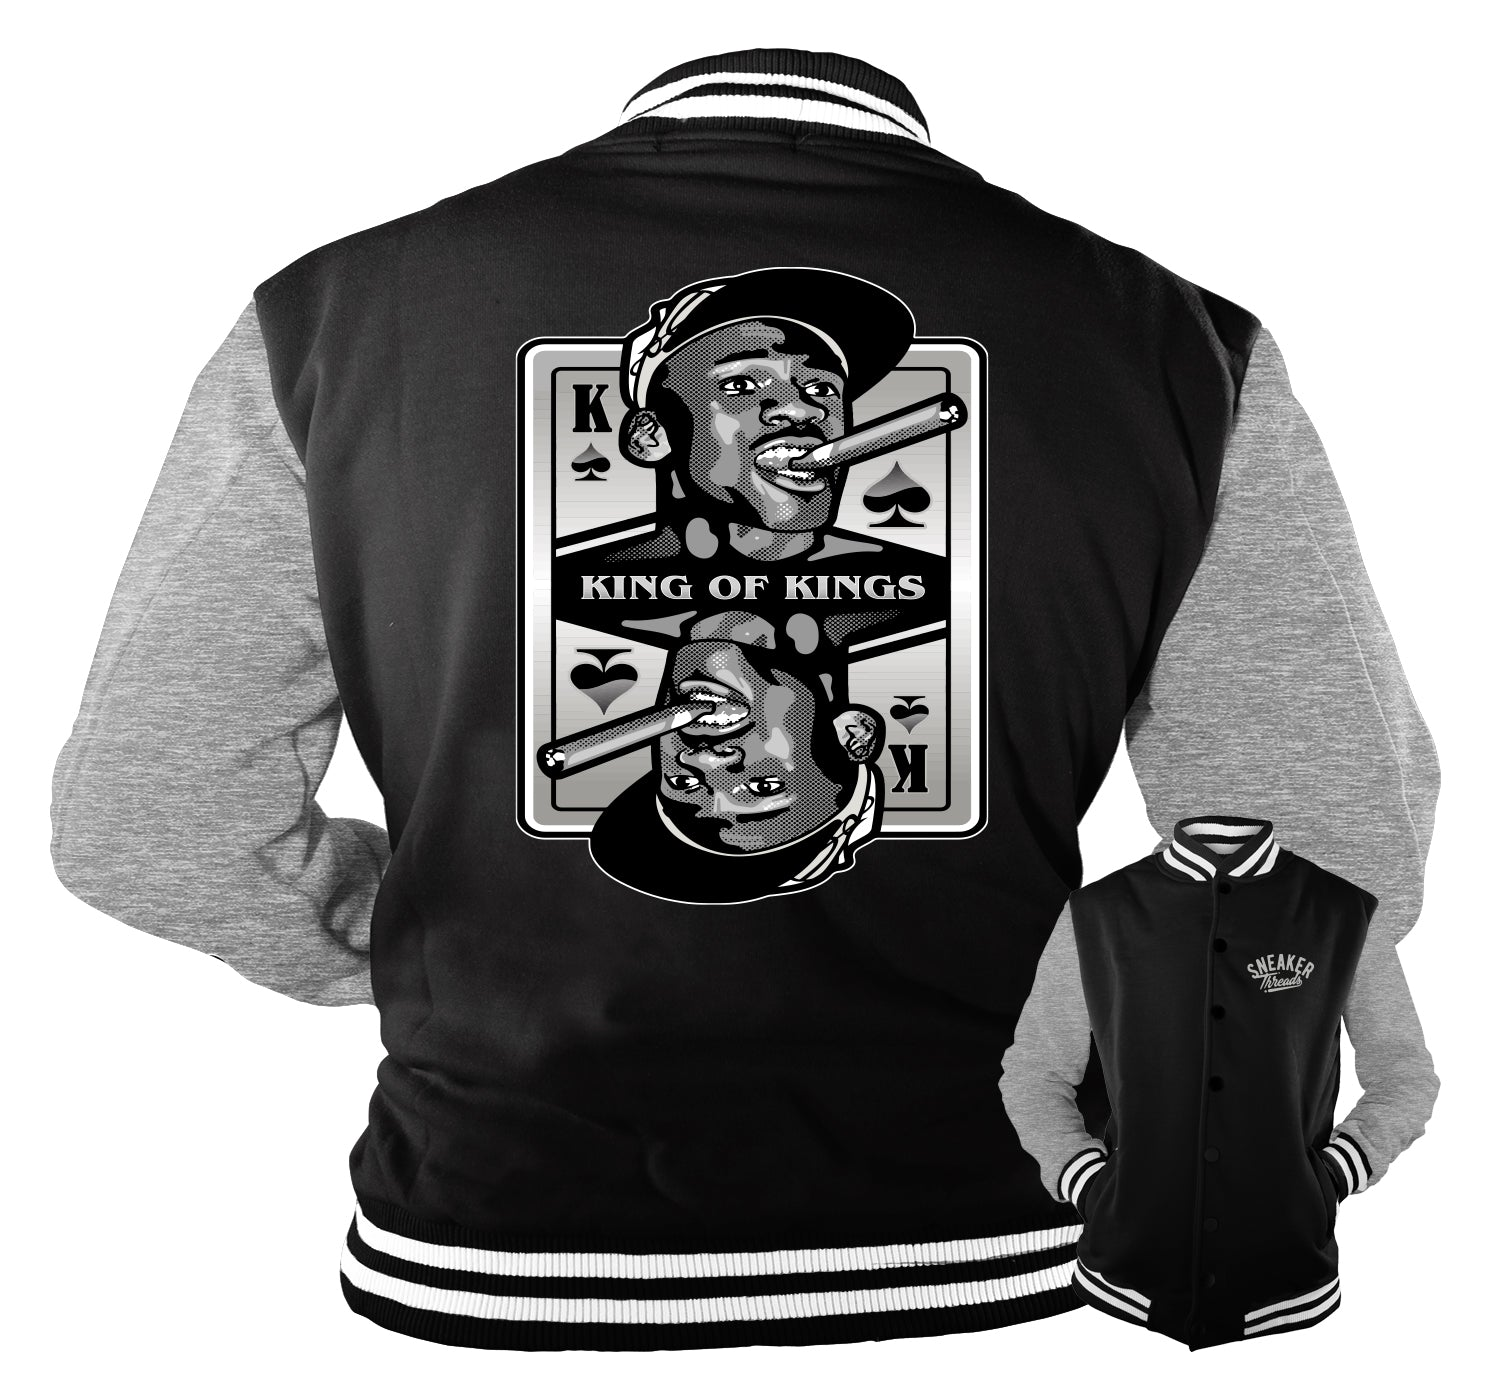 Jordan 11 Jubilee King Of Kings Jacket